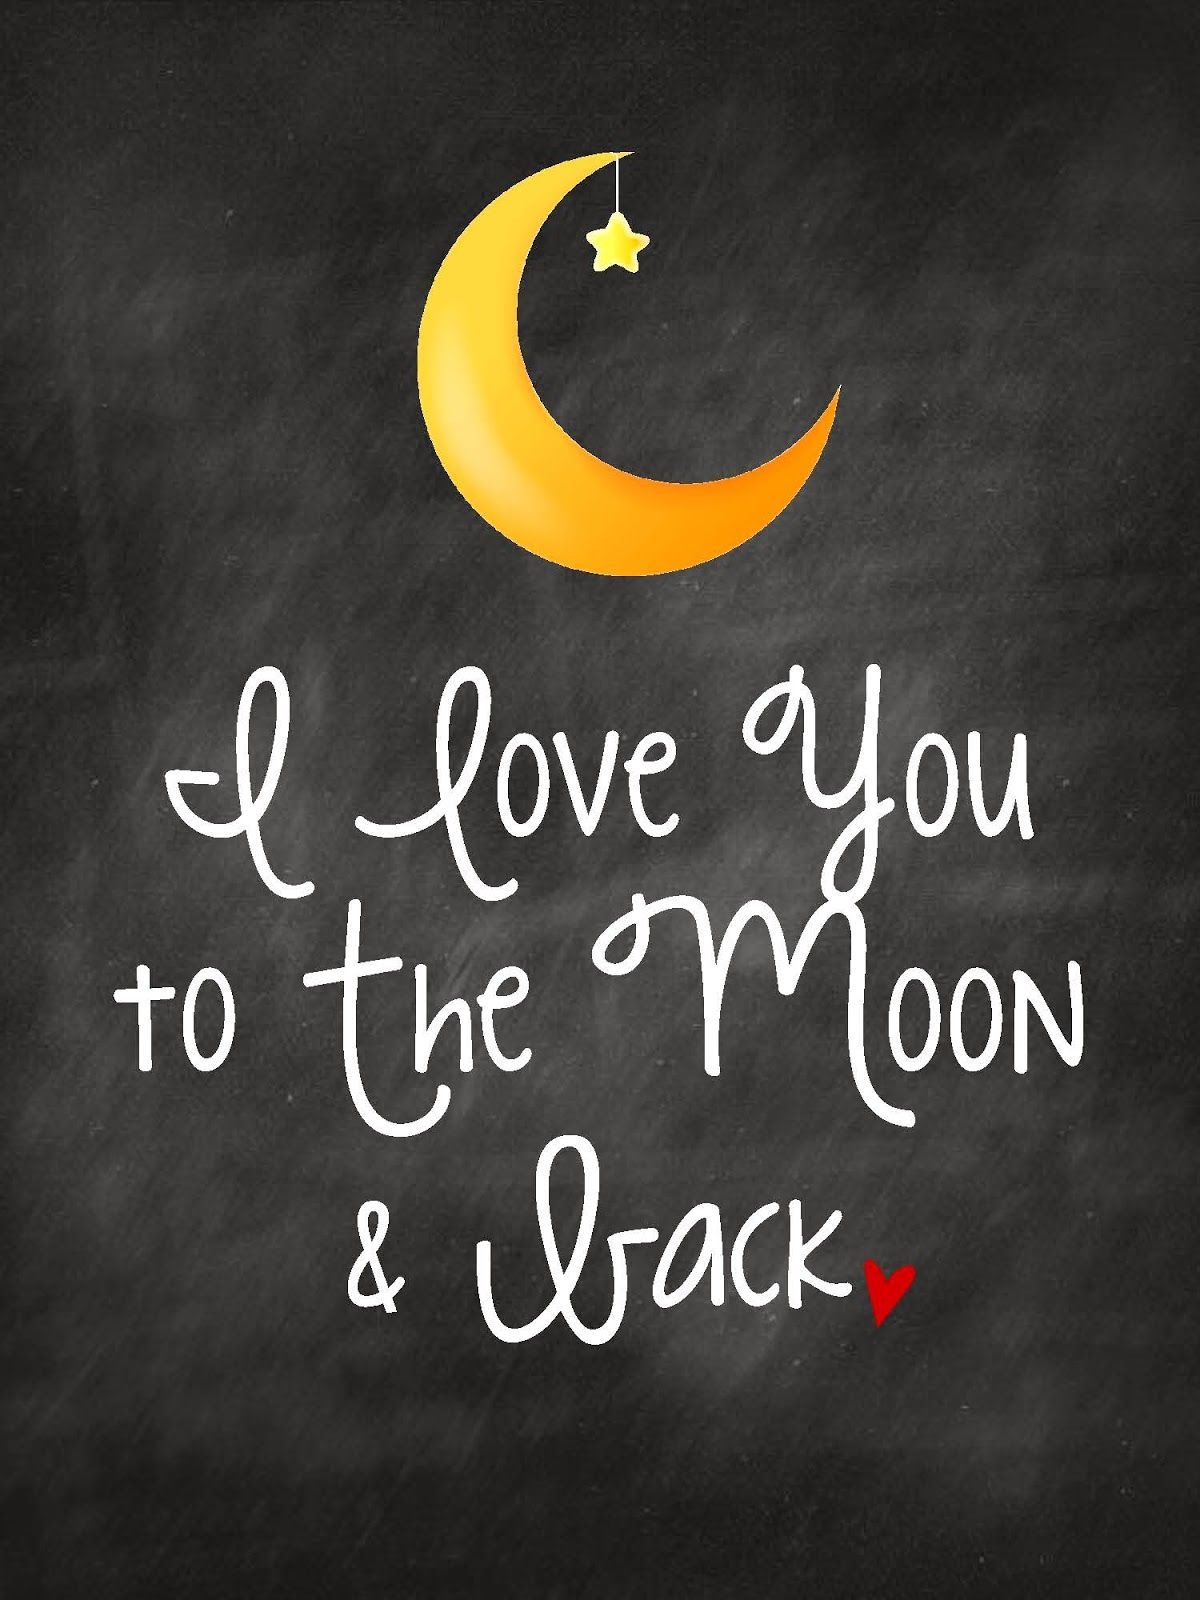 I Love You To The Moon & Back | Kids Art Free Printable Nursery Wall - Free Printable Love You To The Moon And Back